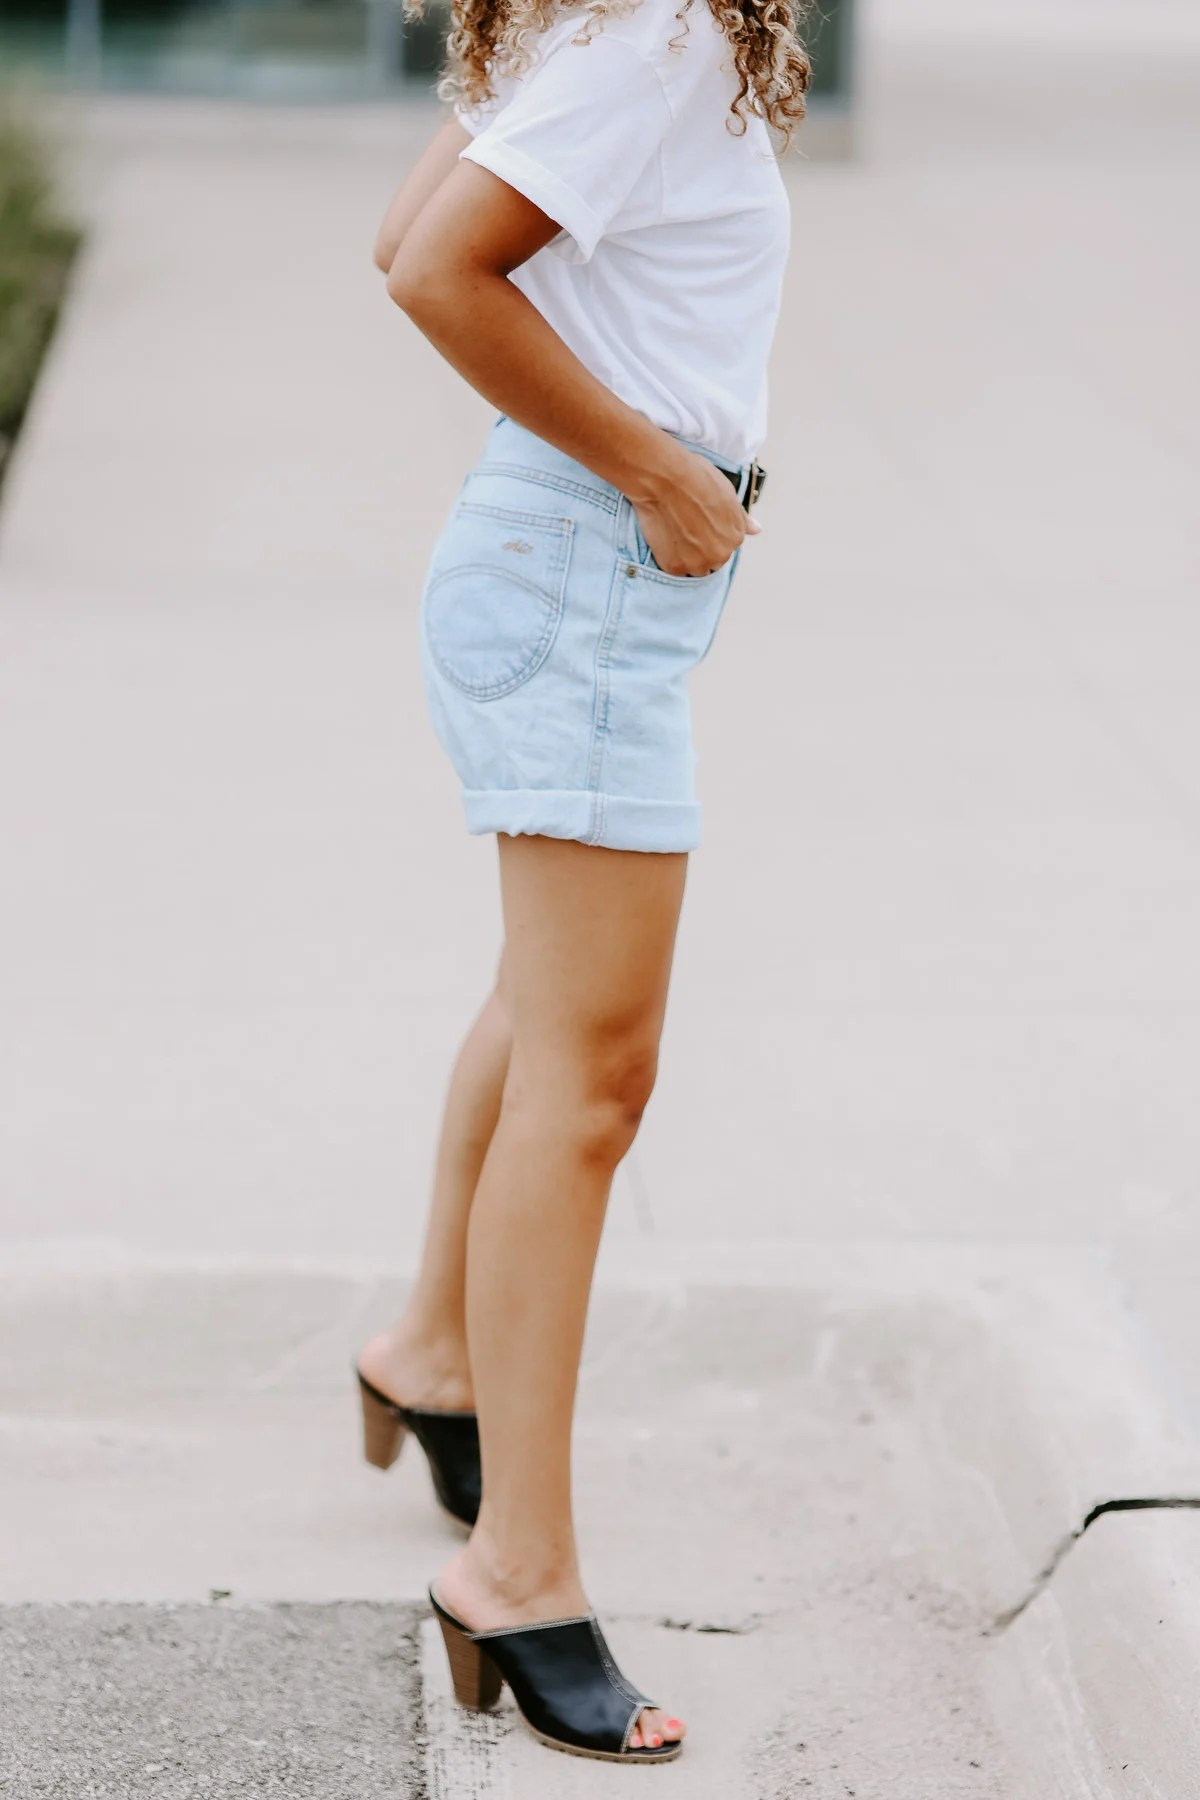 Want to look cute on a budget? It's not always what you wear, but how you wear it, like these cuffed summer shorts